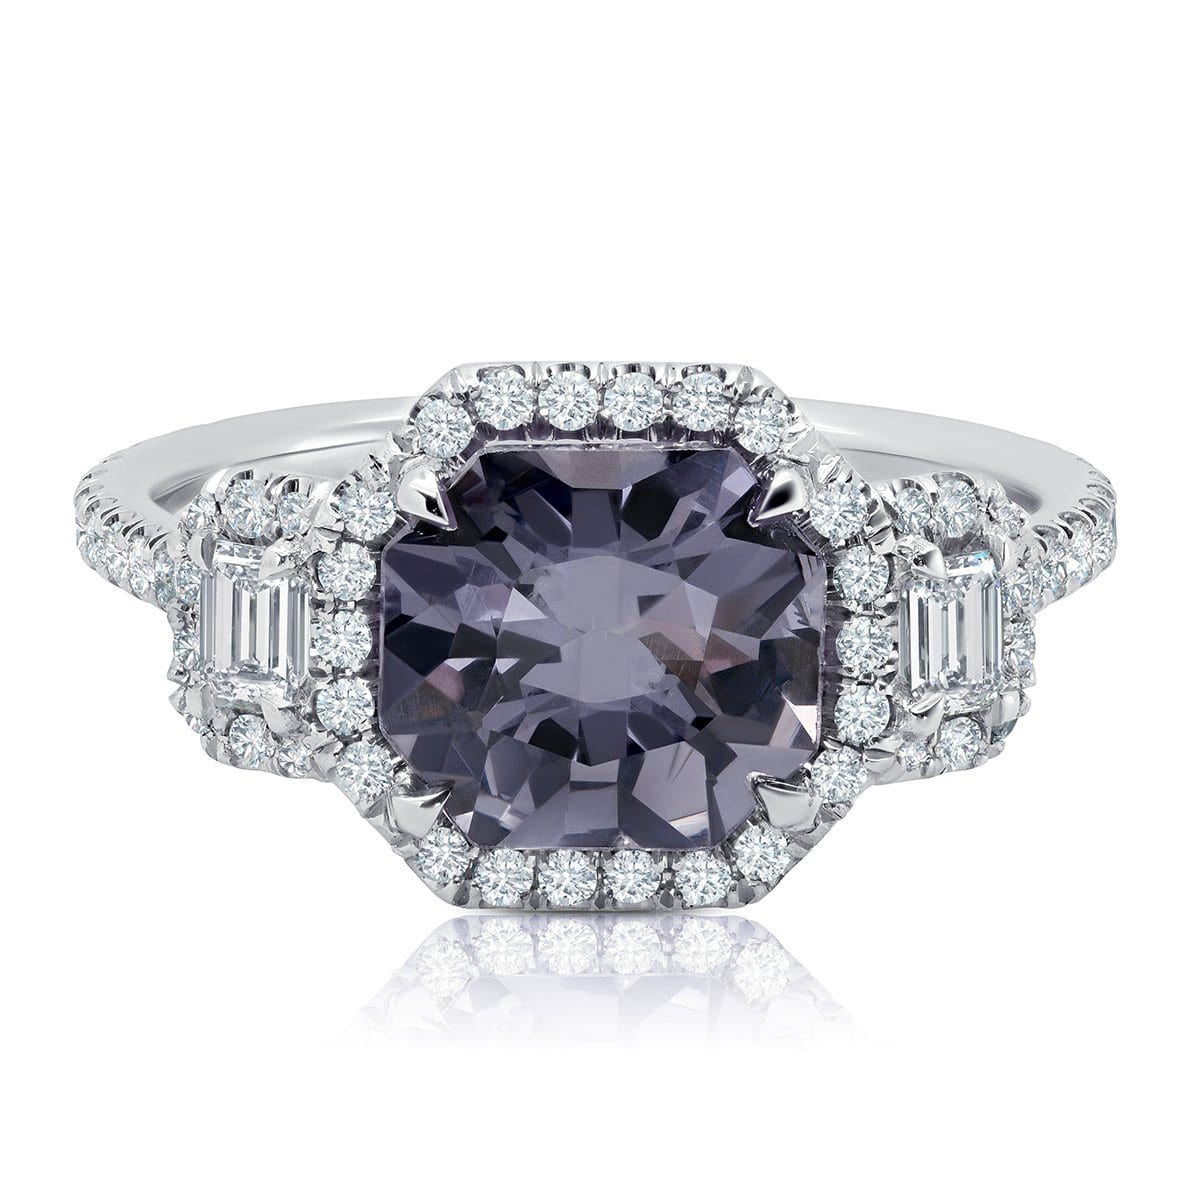 Grey Spinel Diamond Halo Octagonal Three Stone Ring 14kt White Gold Ready-To-Ship deBebians